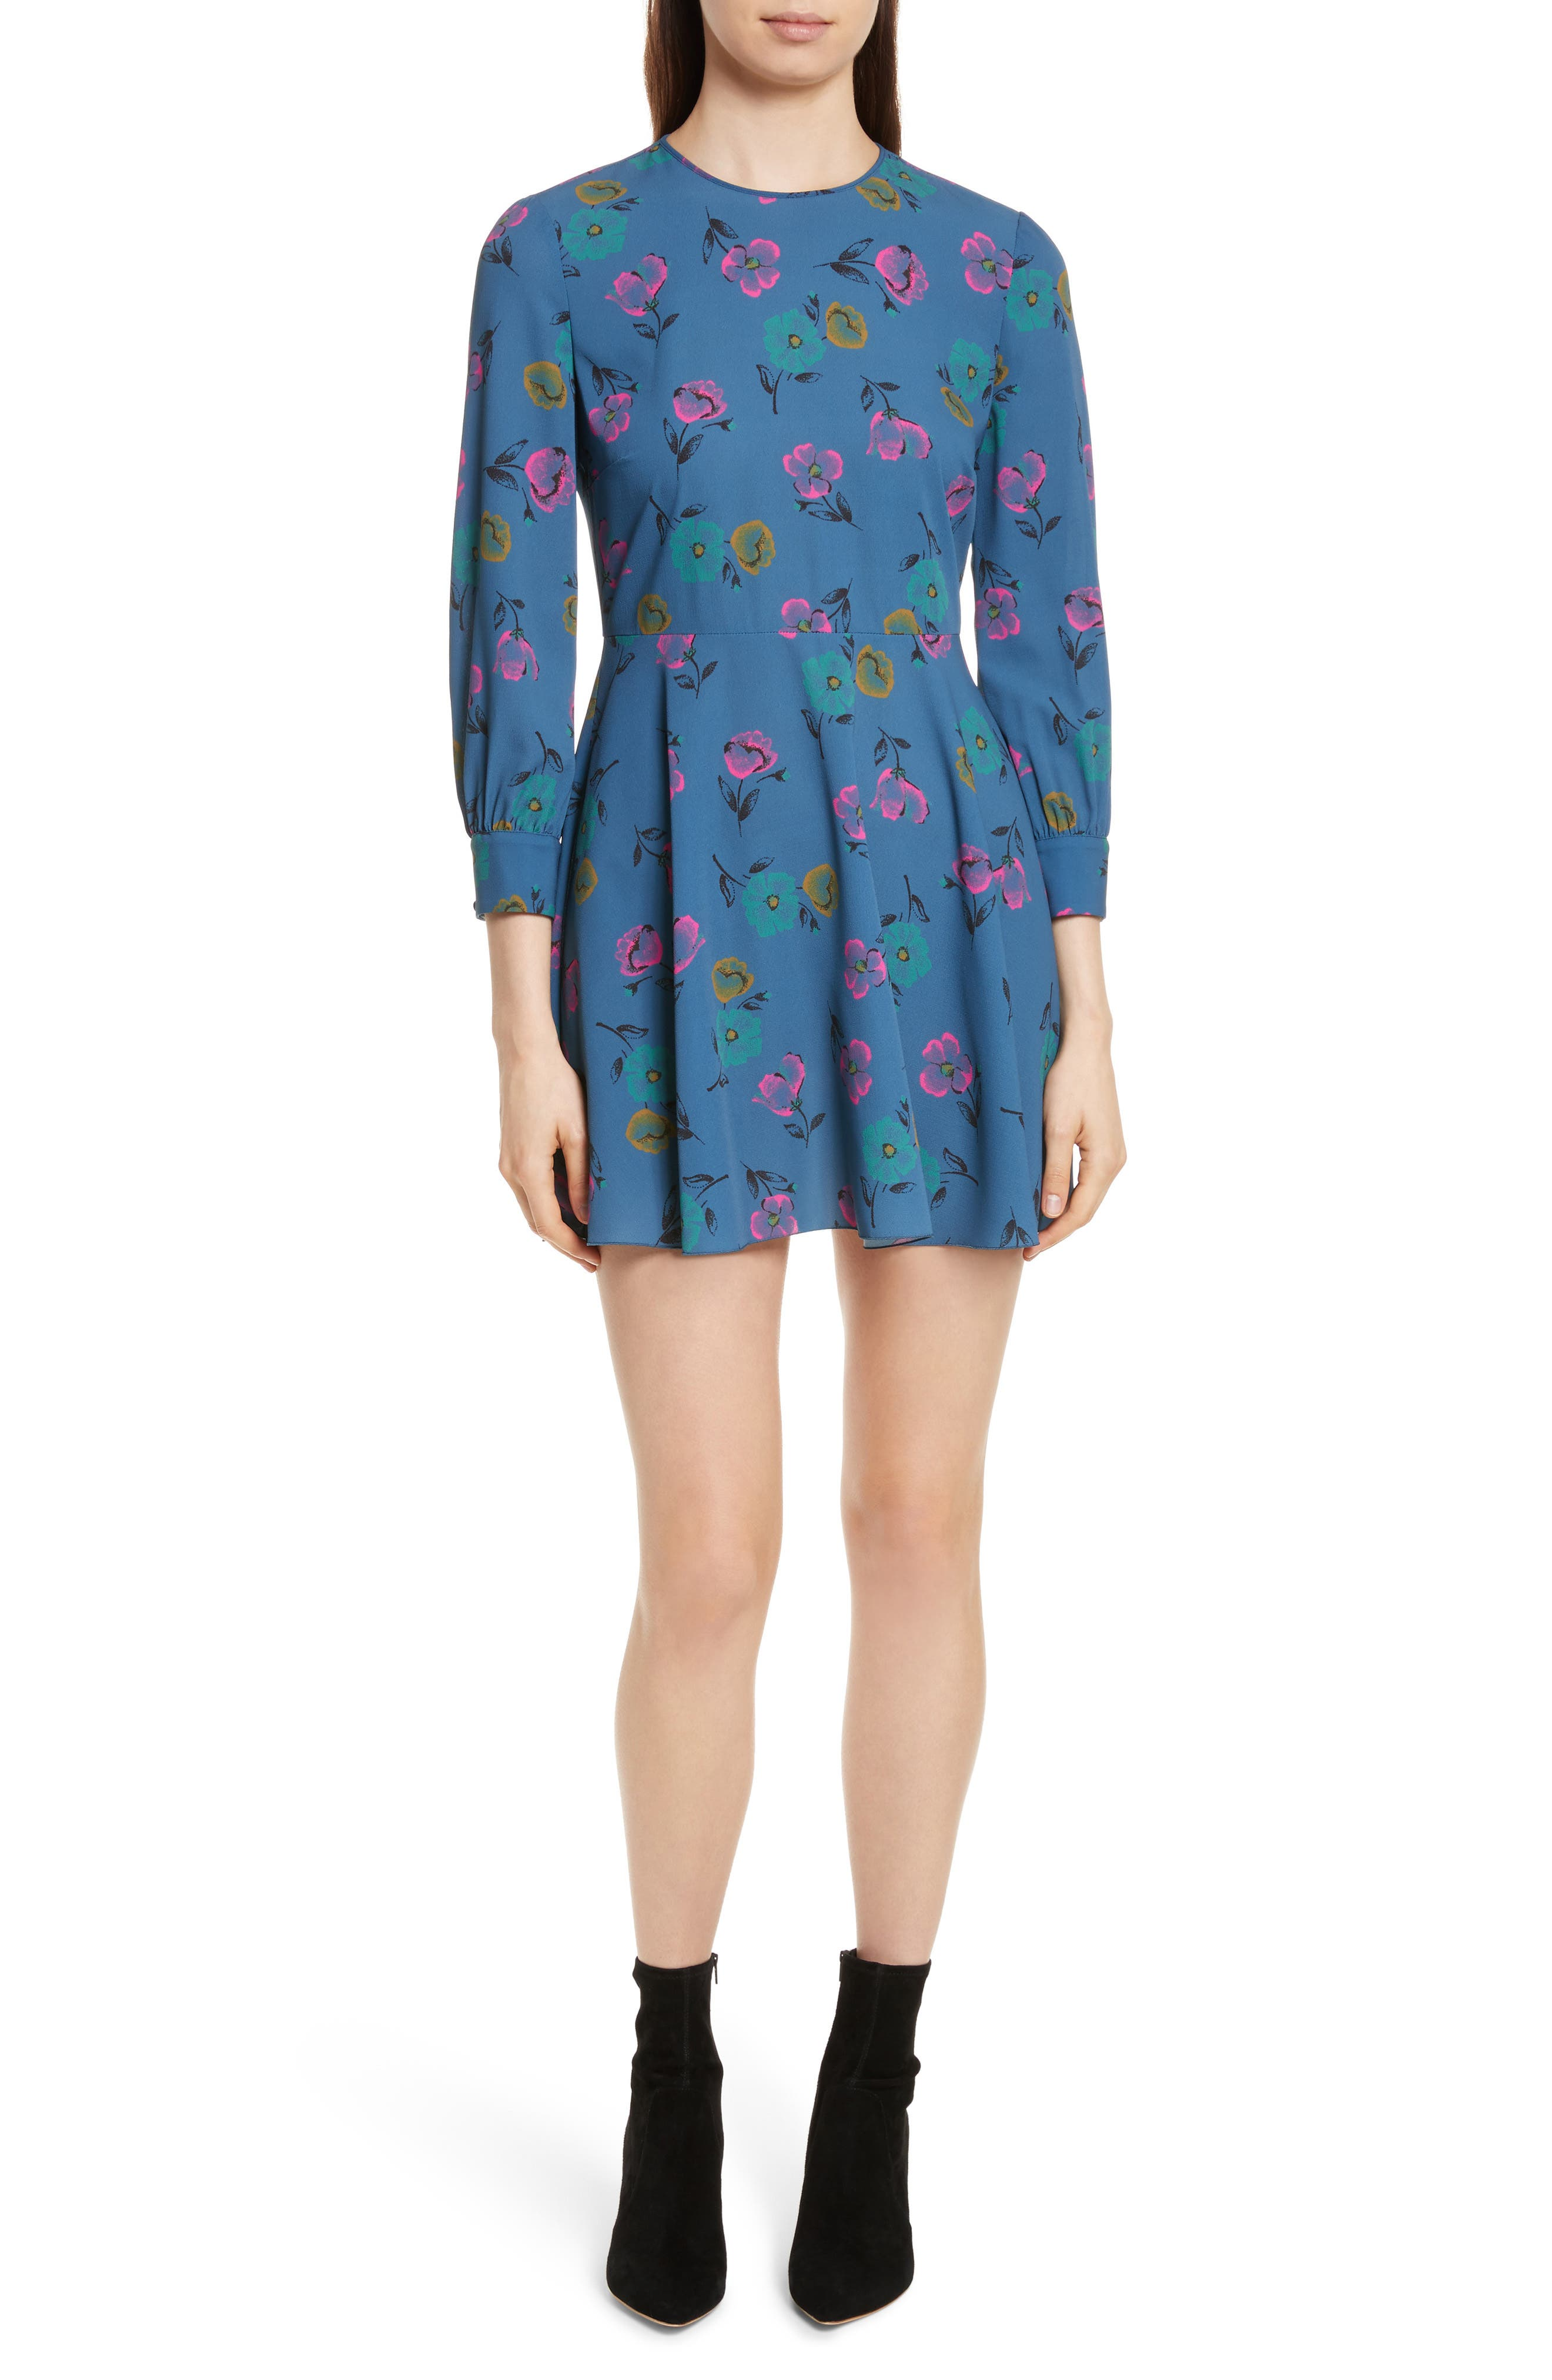 Alternate Image 1 Selected - RED Valentino Anemone Floral Print Crepe Dress